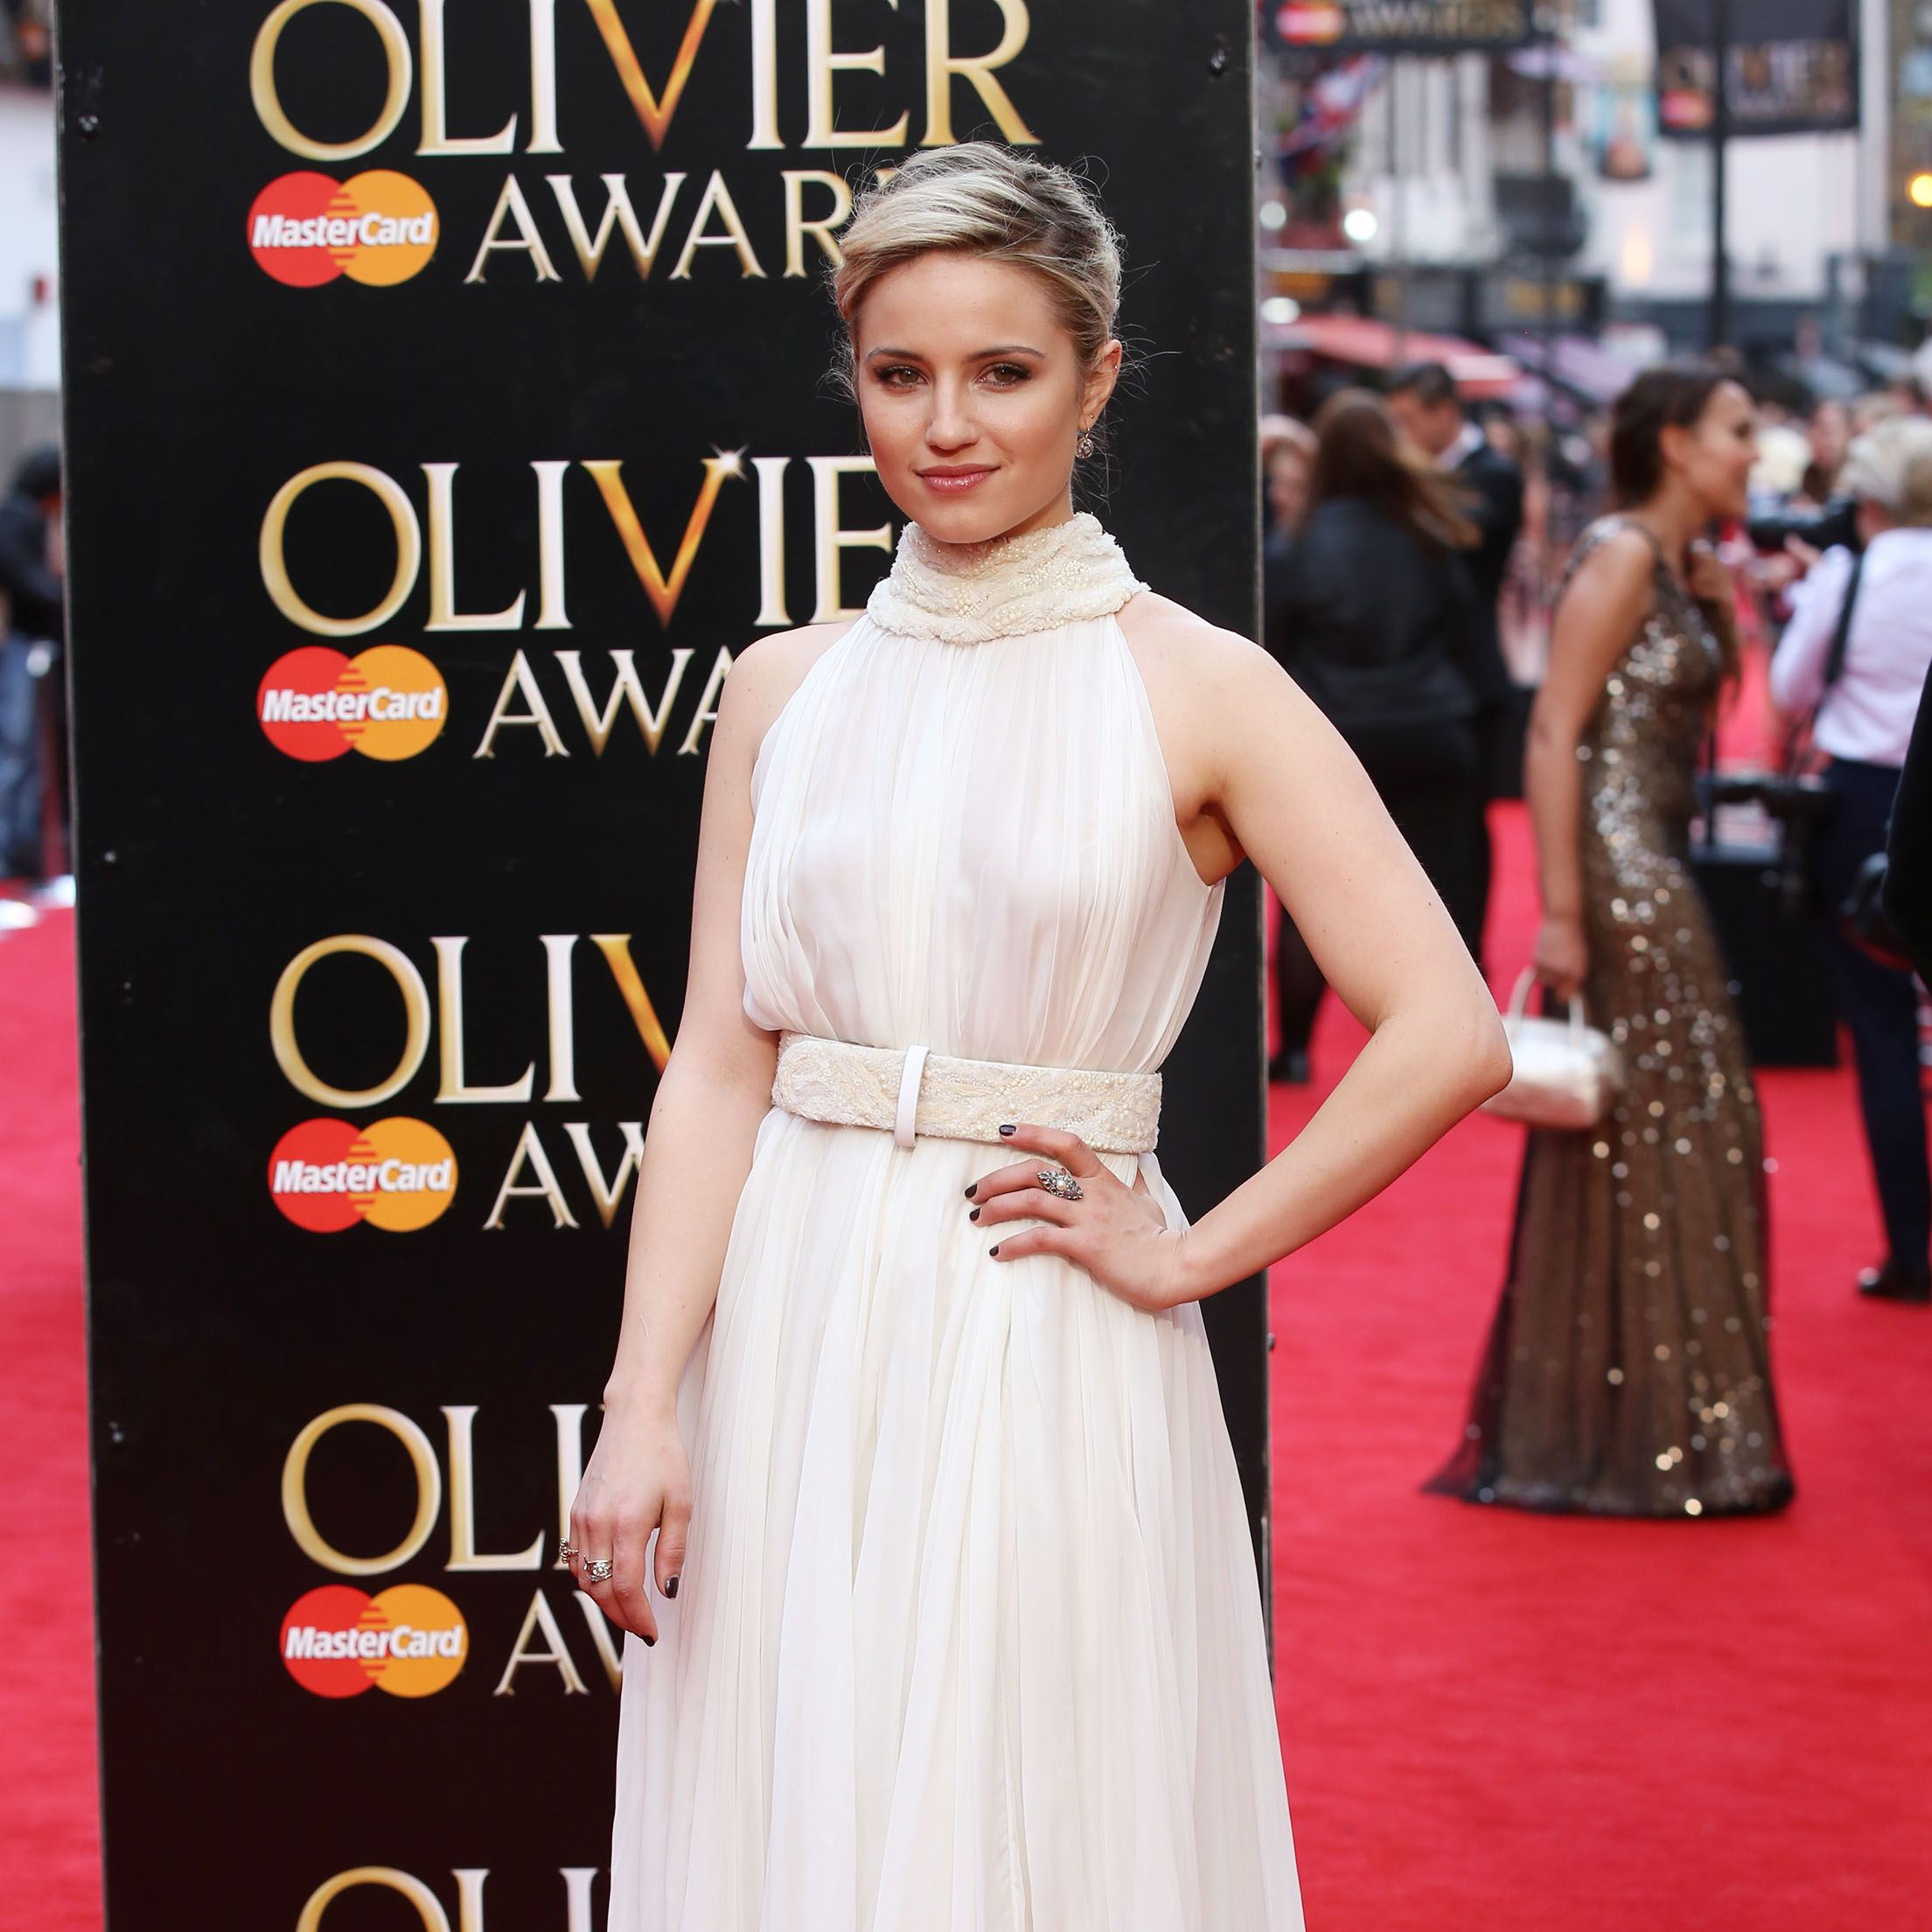 Dianna Agron at the Olivier Awards 2015